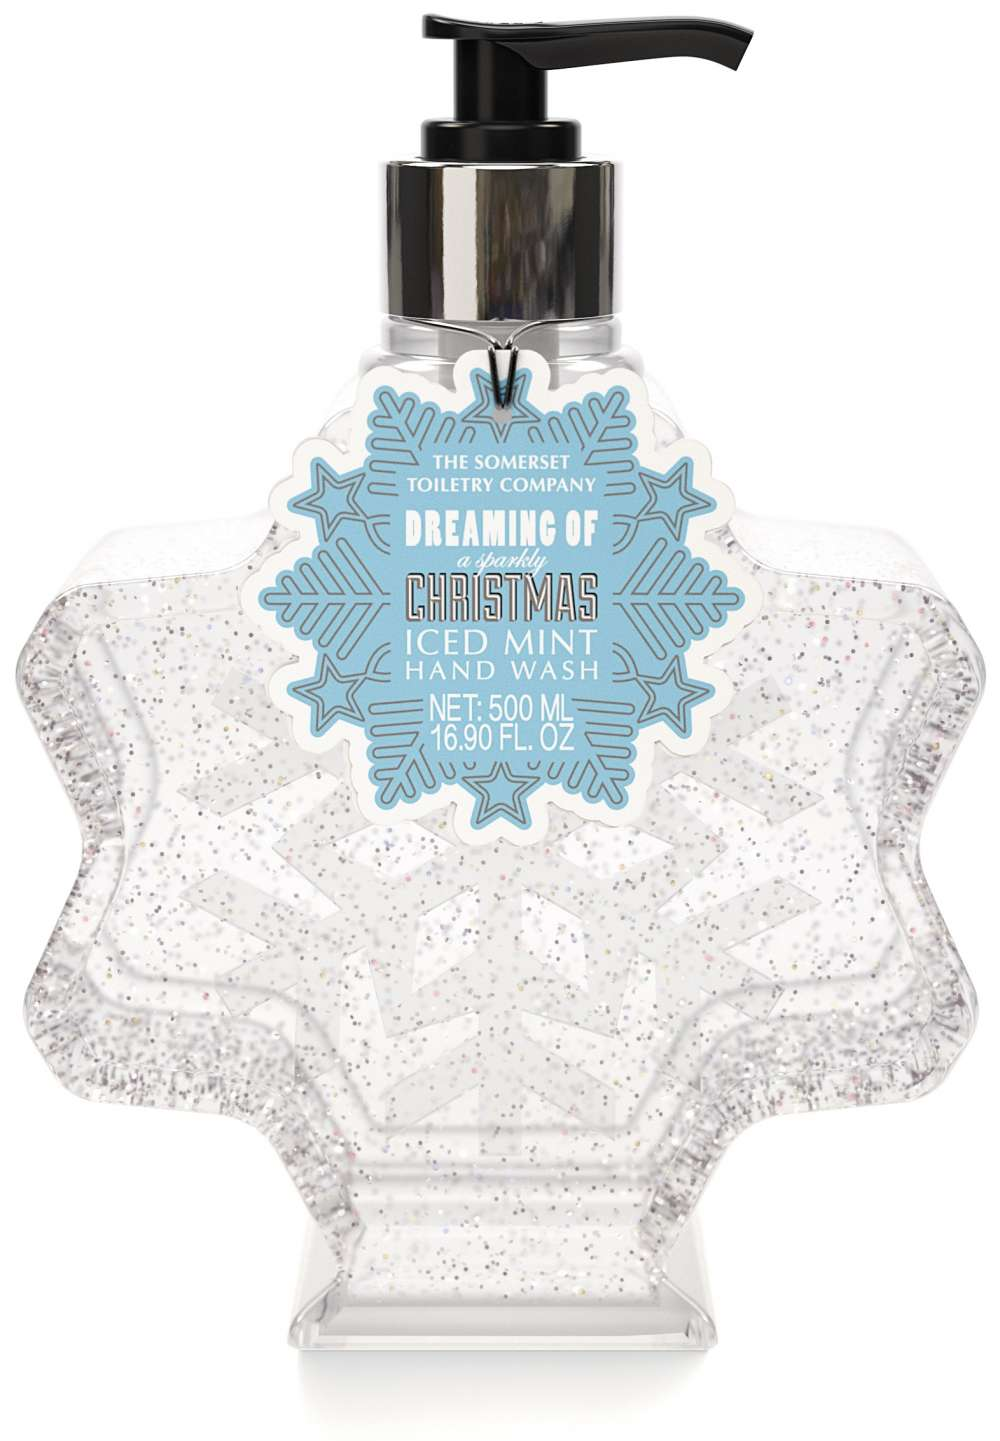 Iced Mint Snowflake Xmas Hand Wash